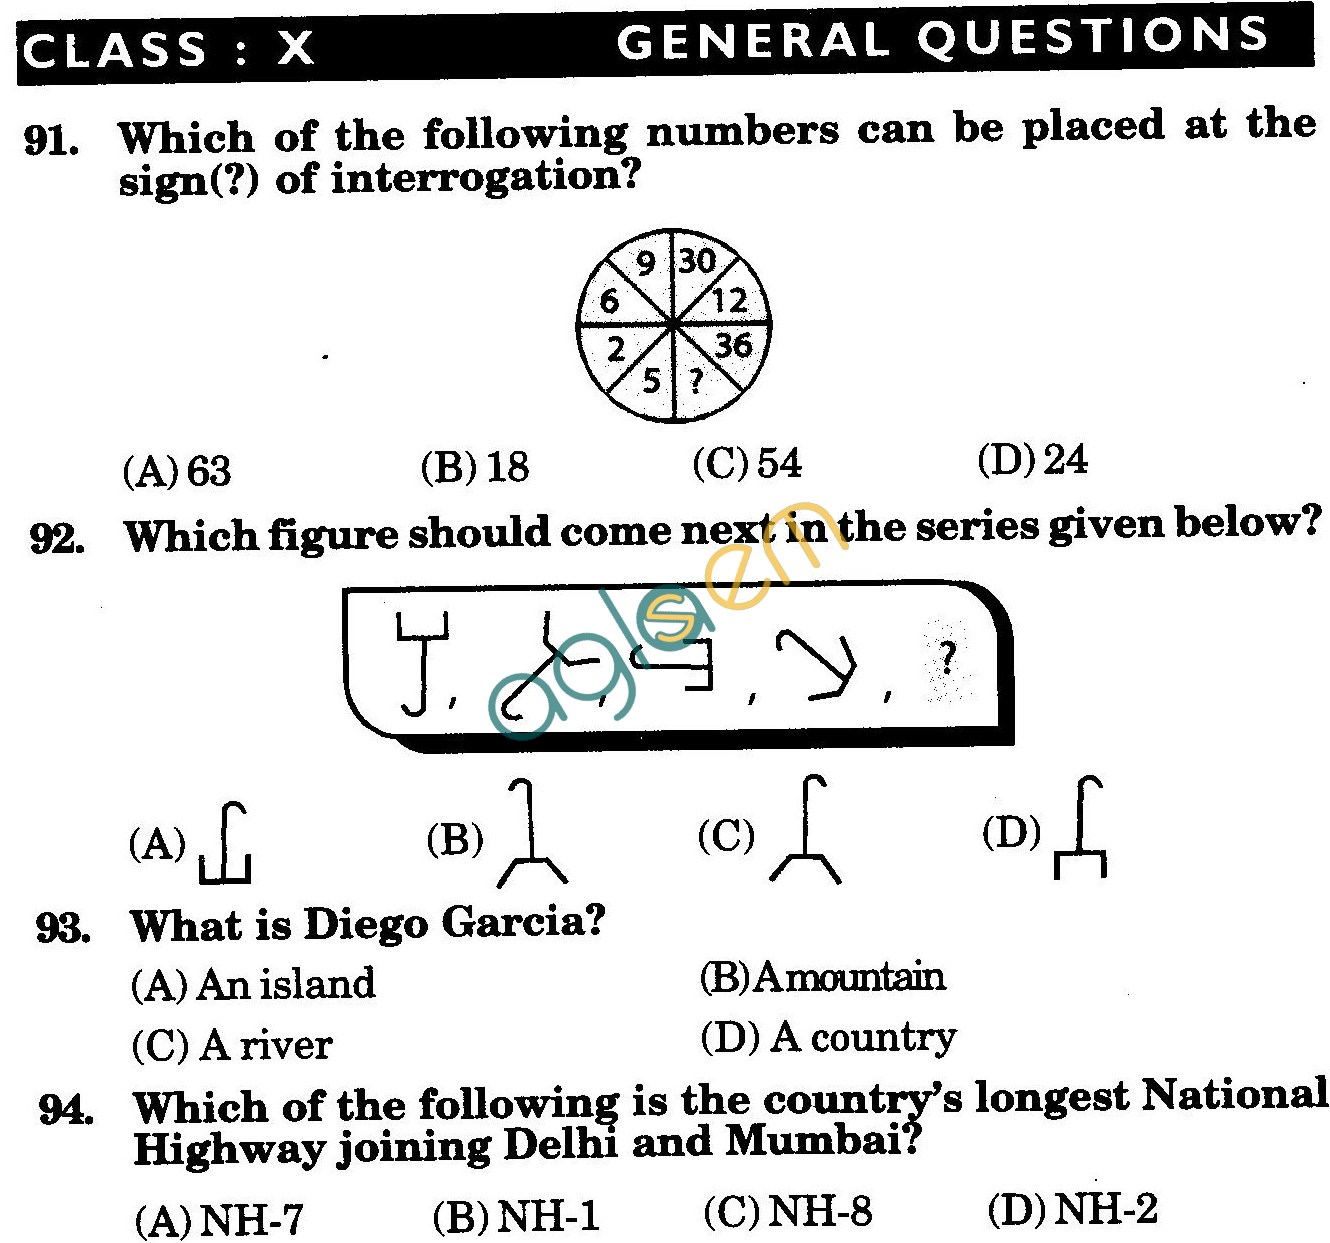 NSTSE 2010 Class X Question Paper with Answers - General Knowledge